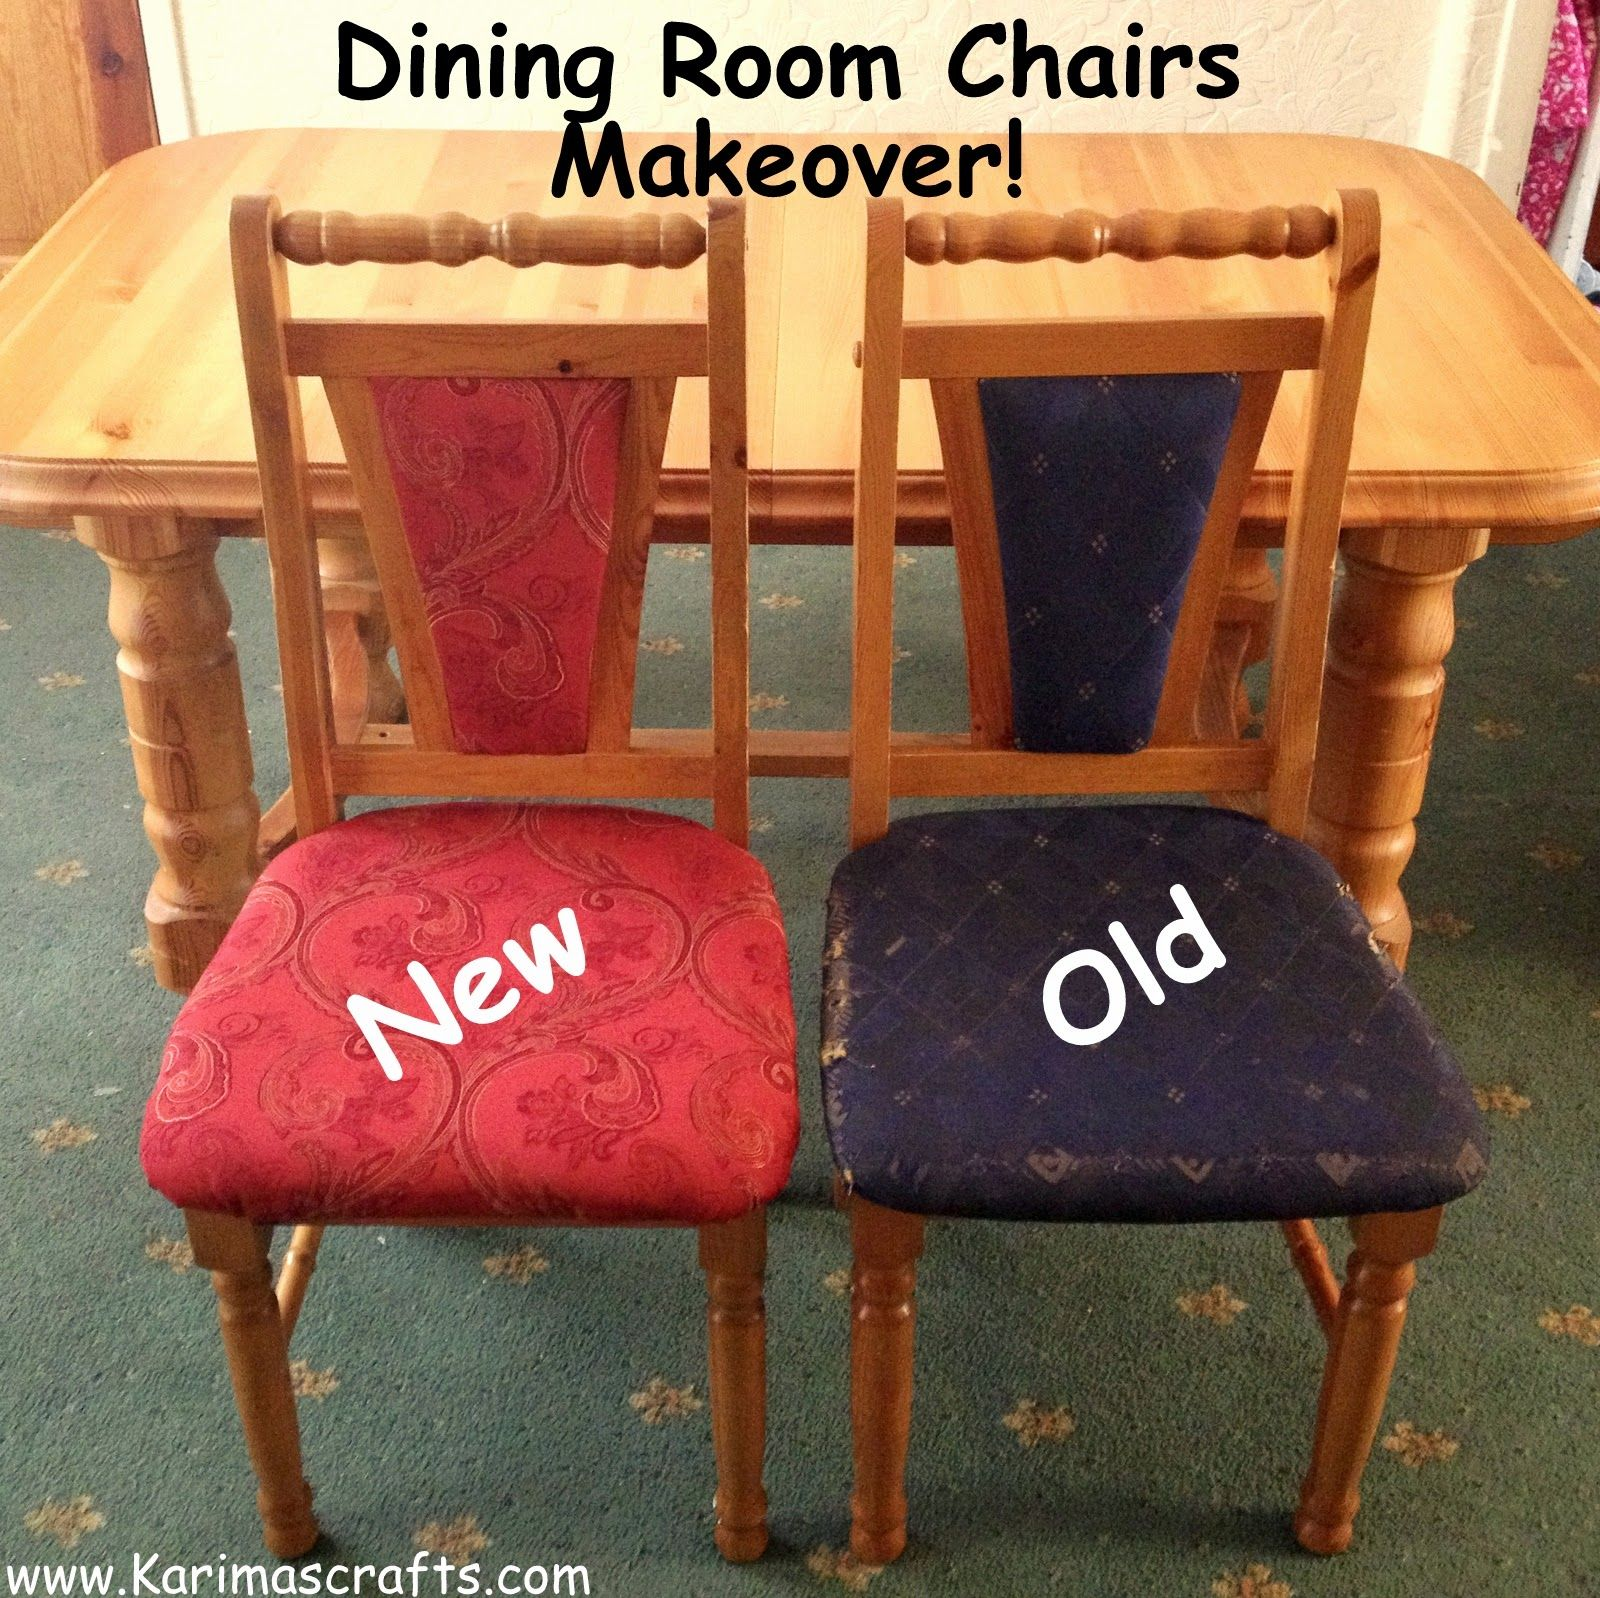 Tremendous Dining Chairs Reupholstered Using Cheap Charity Shop Curtain Pdpeps Interior Chair Design Pdpepsorg